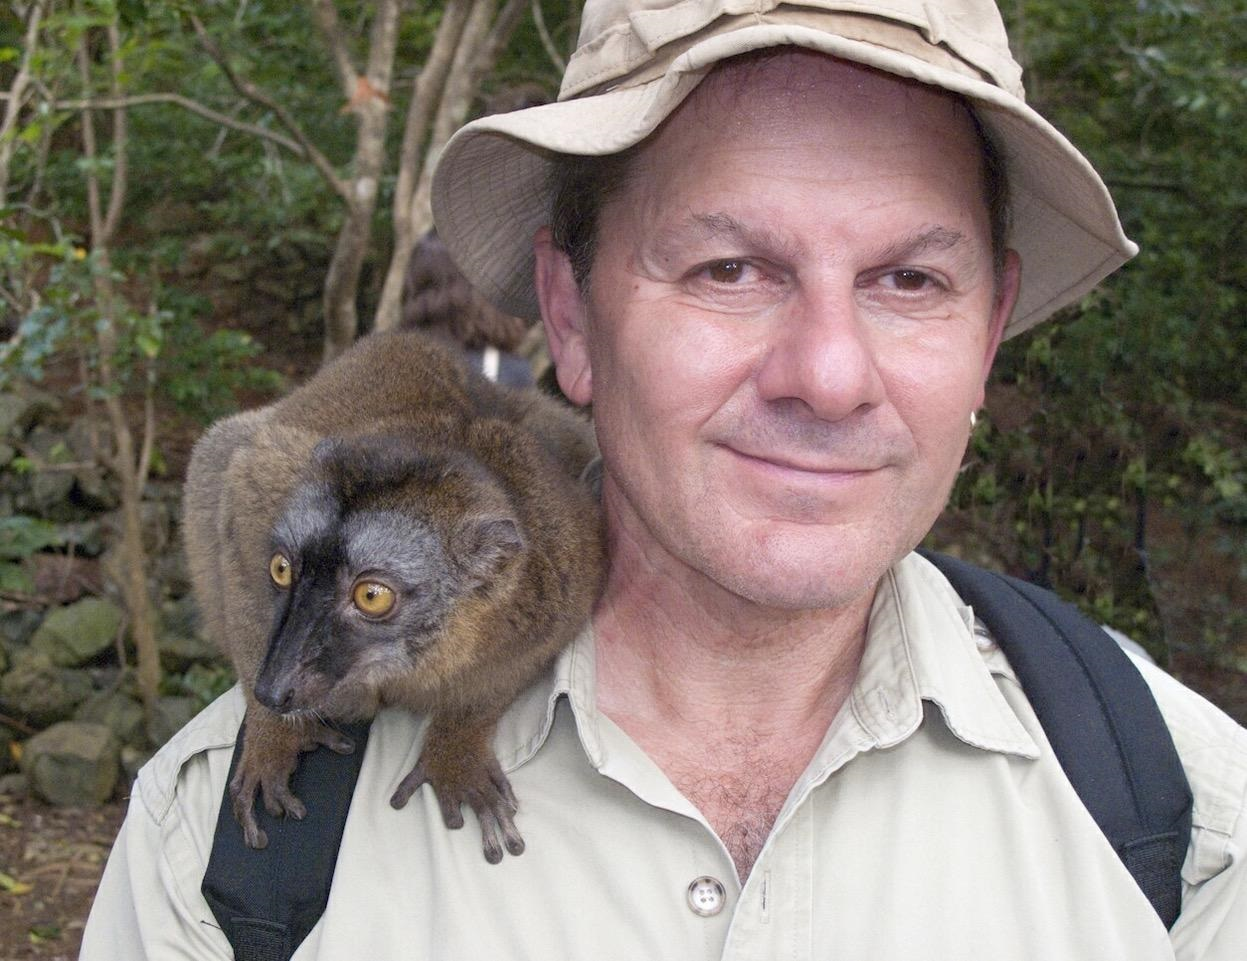 Alan Dean Foster with Mayotte brown lemur. M'bouzi island, French Comoros. Photo credit to Michael Medford.